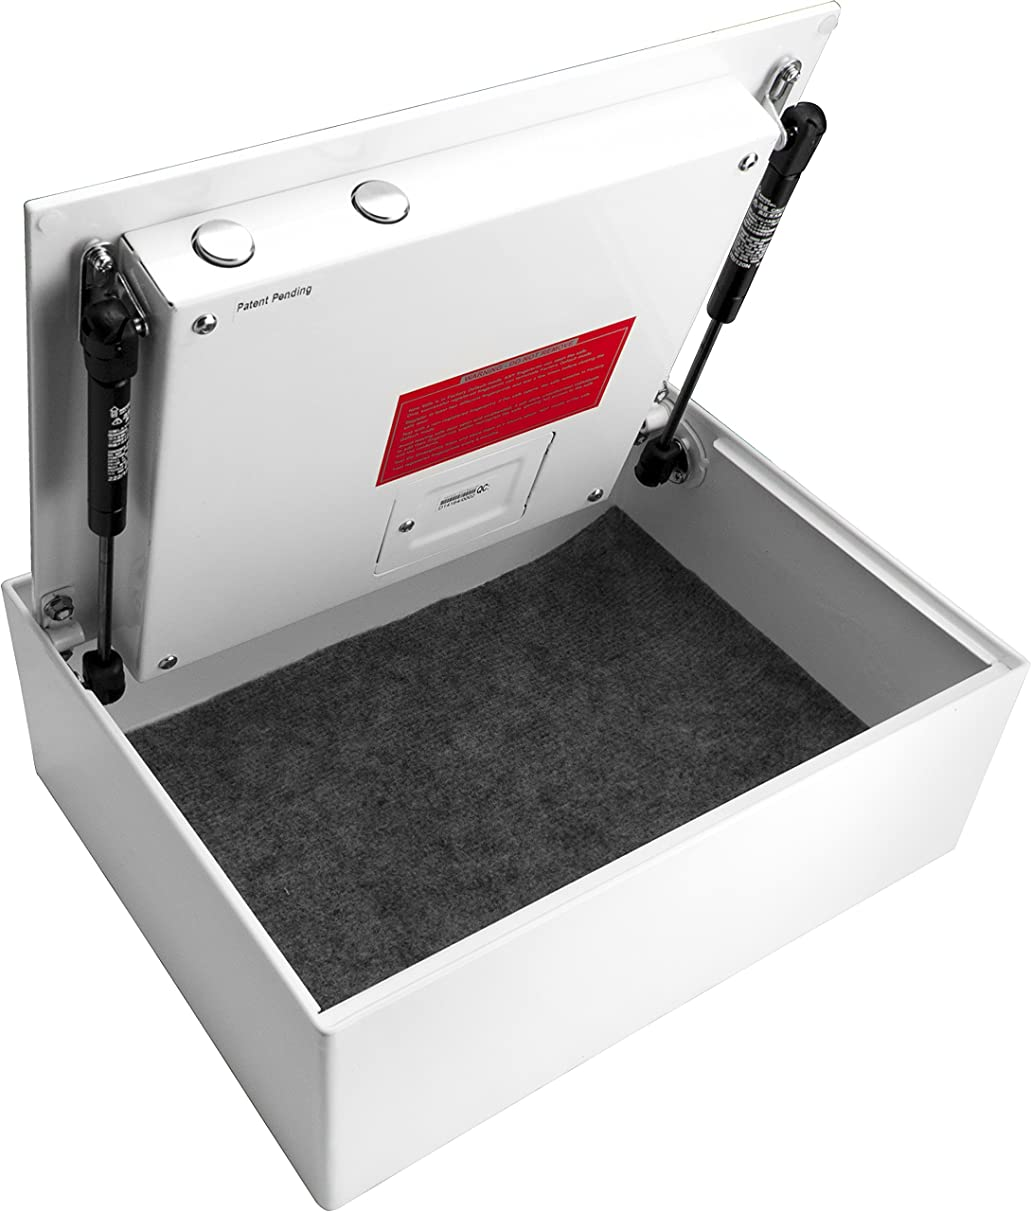 BARSKA Top Opening Steel Drawer Biometric Fingerprint Scan Safe 14.75 in x 11.25 in x 5 in, White